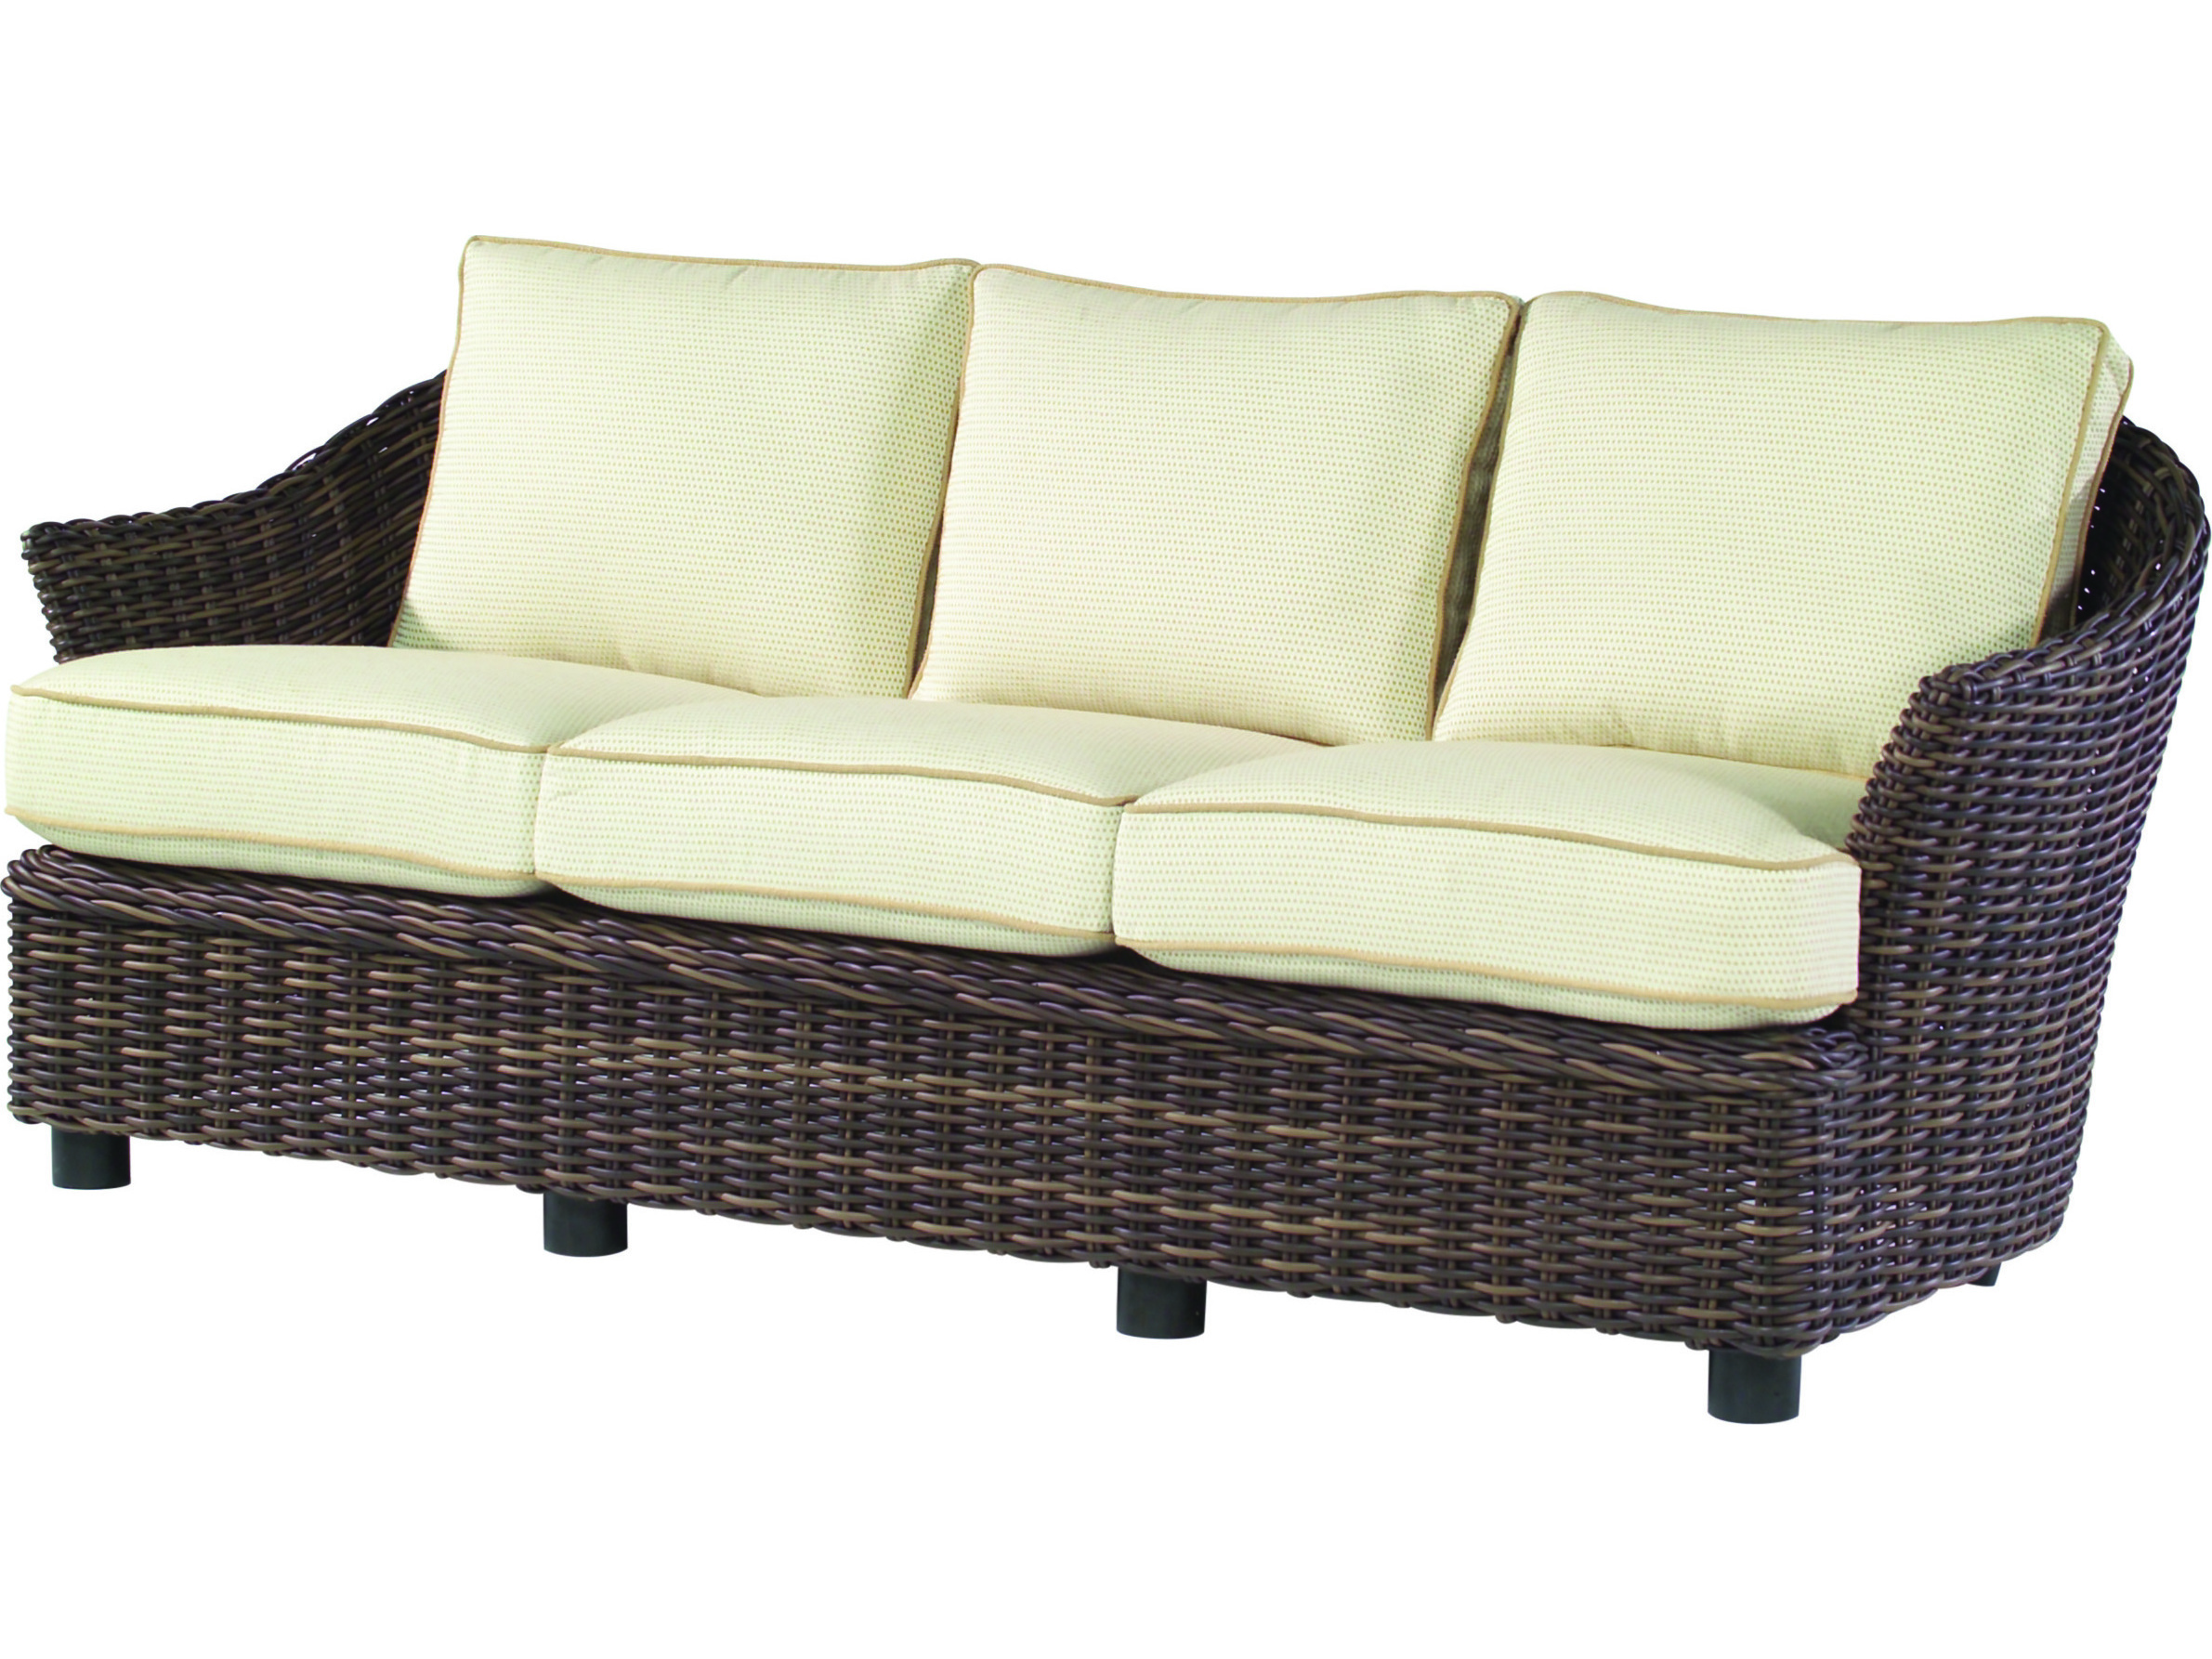 New Replacement Cushions for Wicker Furniture